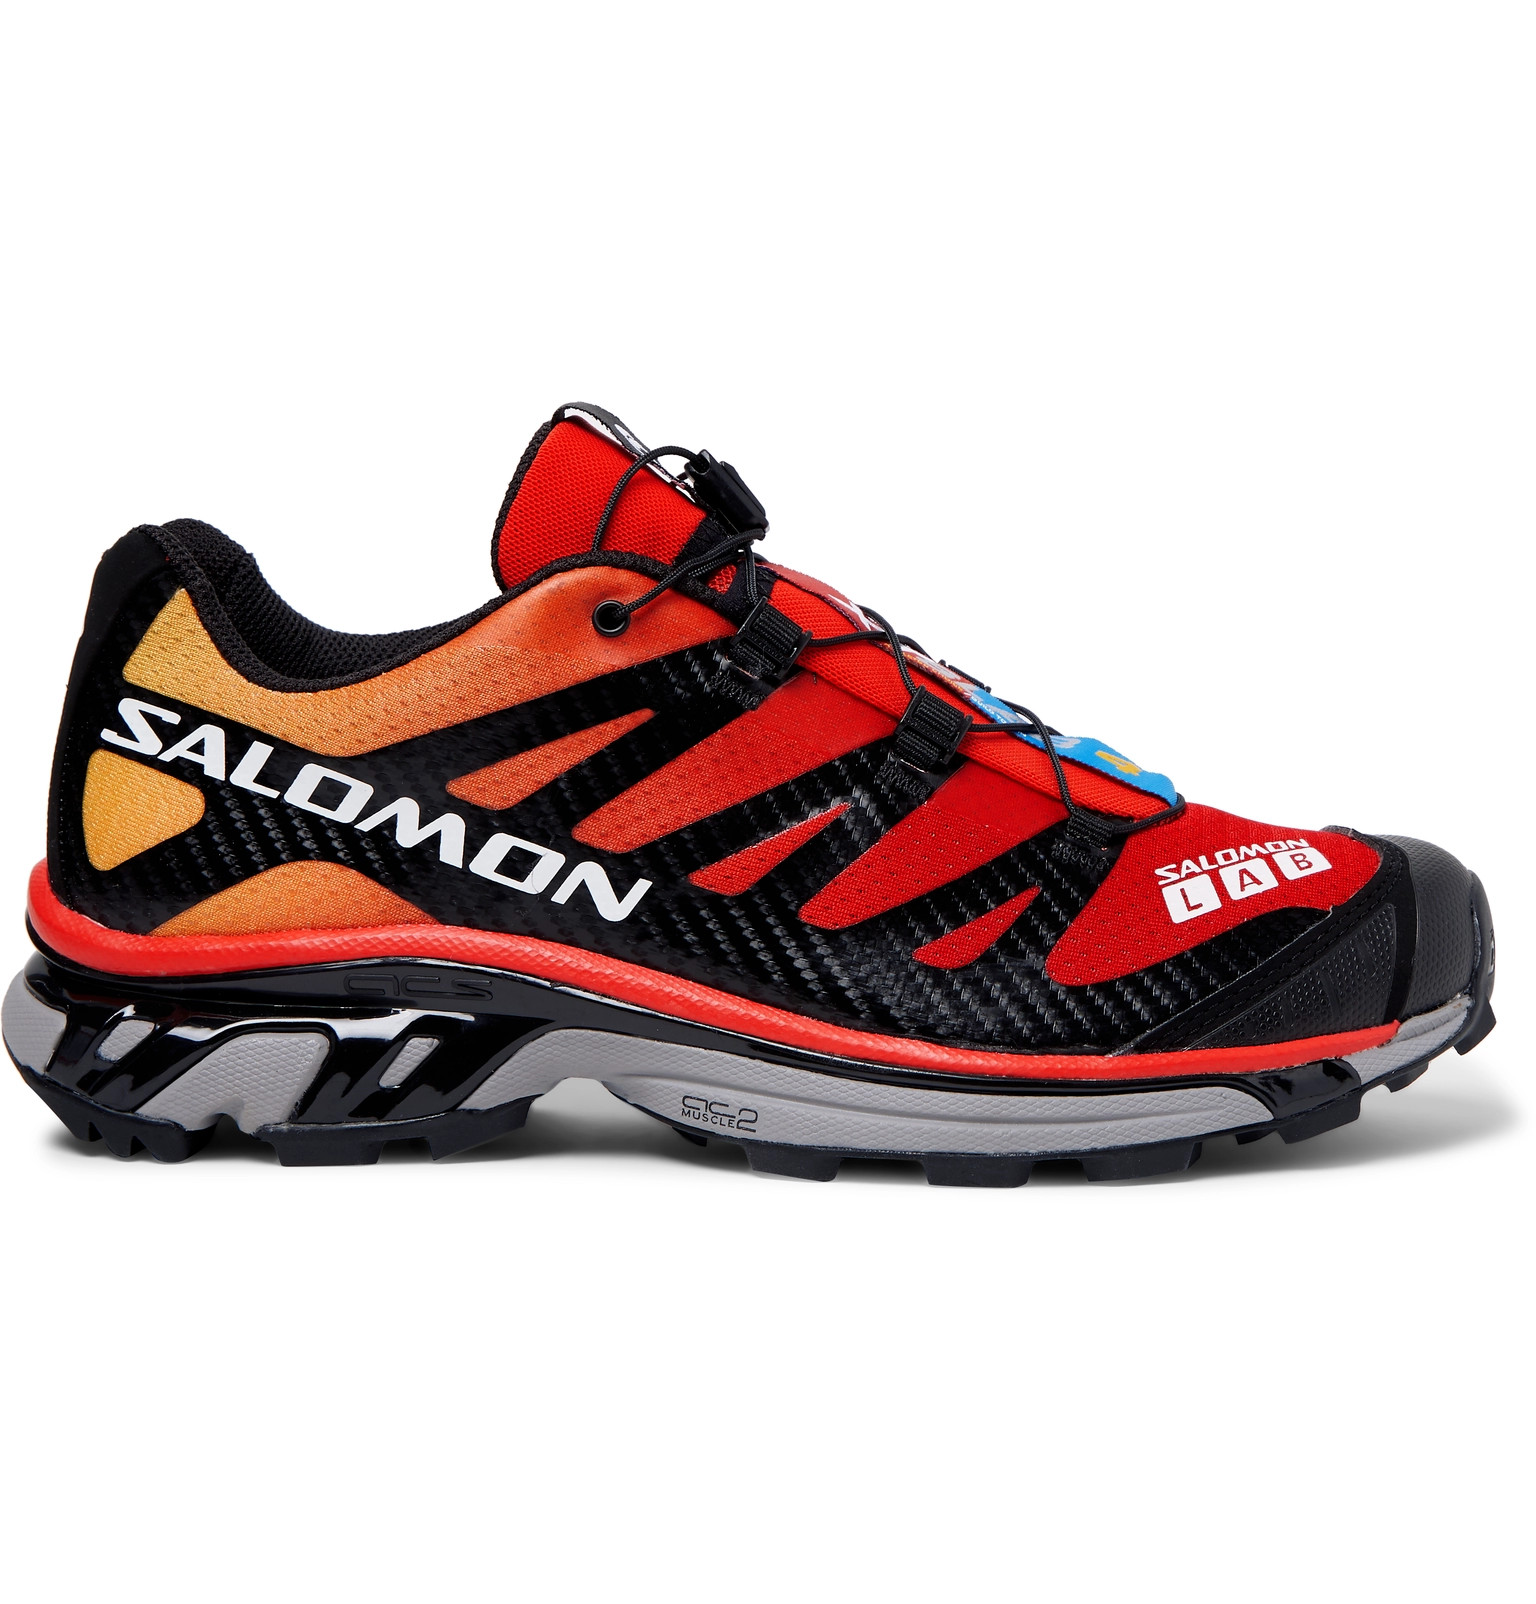 buy online 7ade5 7e0fc Salomon - S/LAB XT-4 ADV Mesh and Rubber Running Sneakers